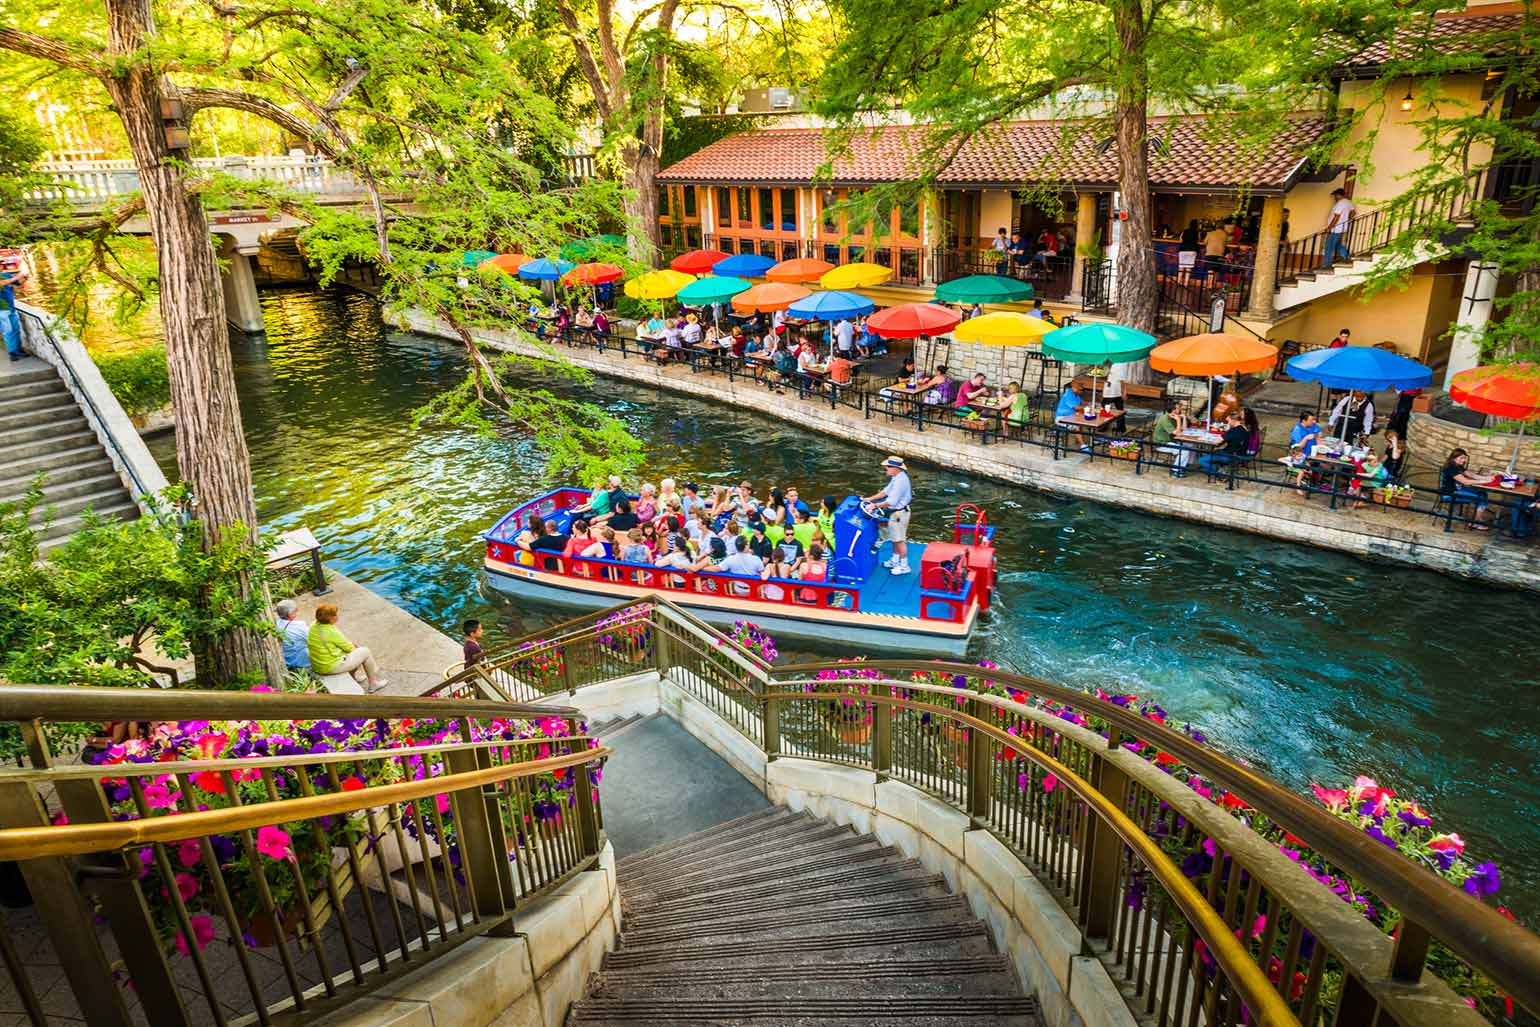 Le Riverwalk, le canal panoramique de San Antonio Park